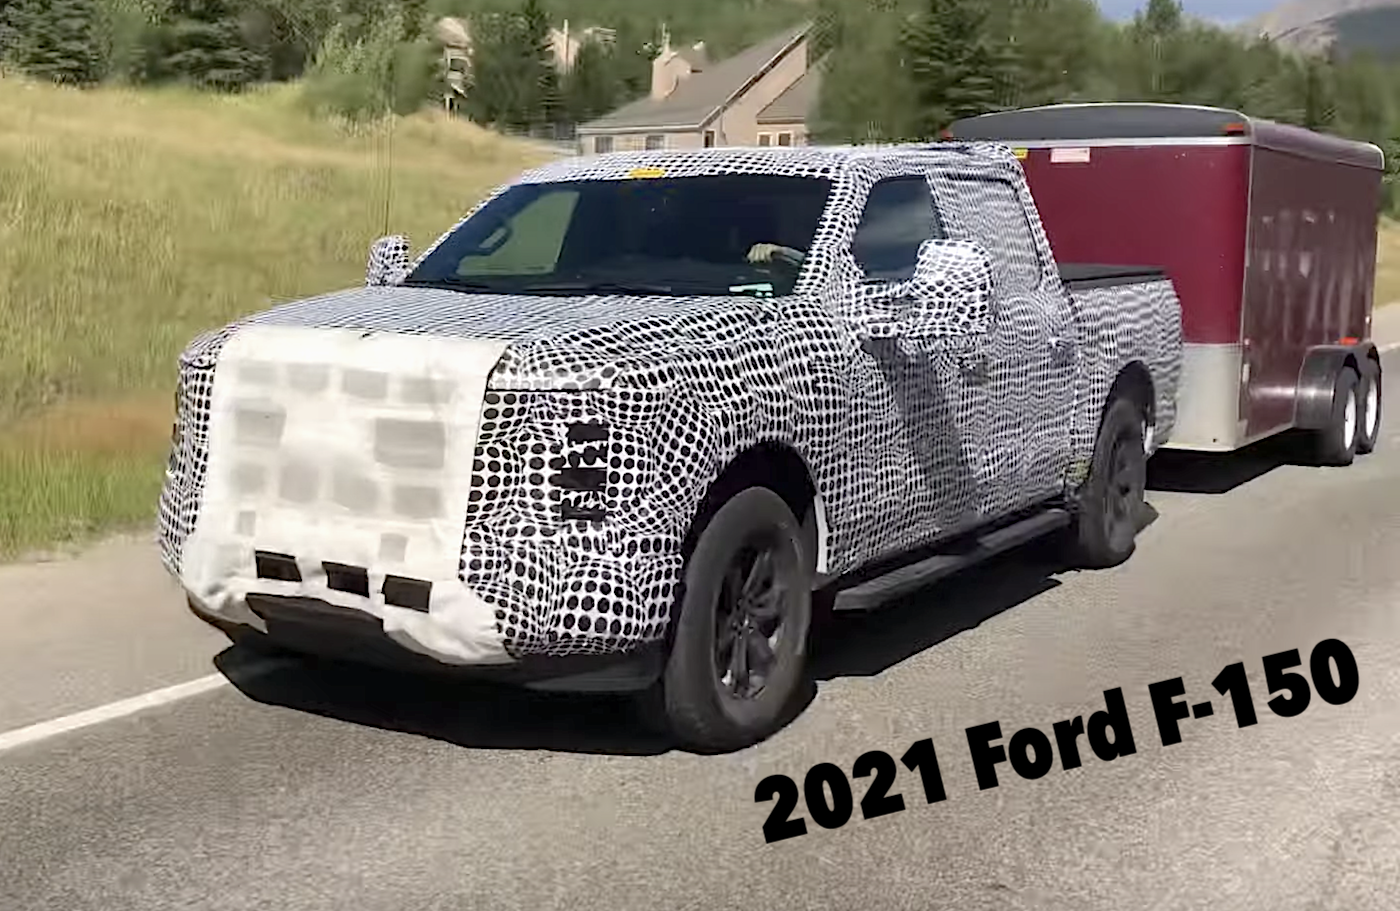 Will The 2021 Ford F-150 Be Rated To Tow Over 13,200 Lbs? We